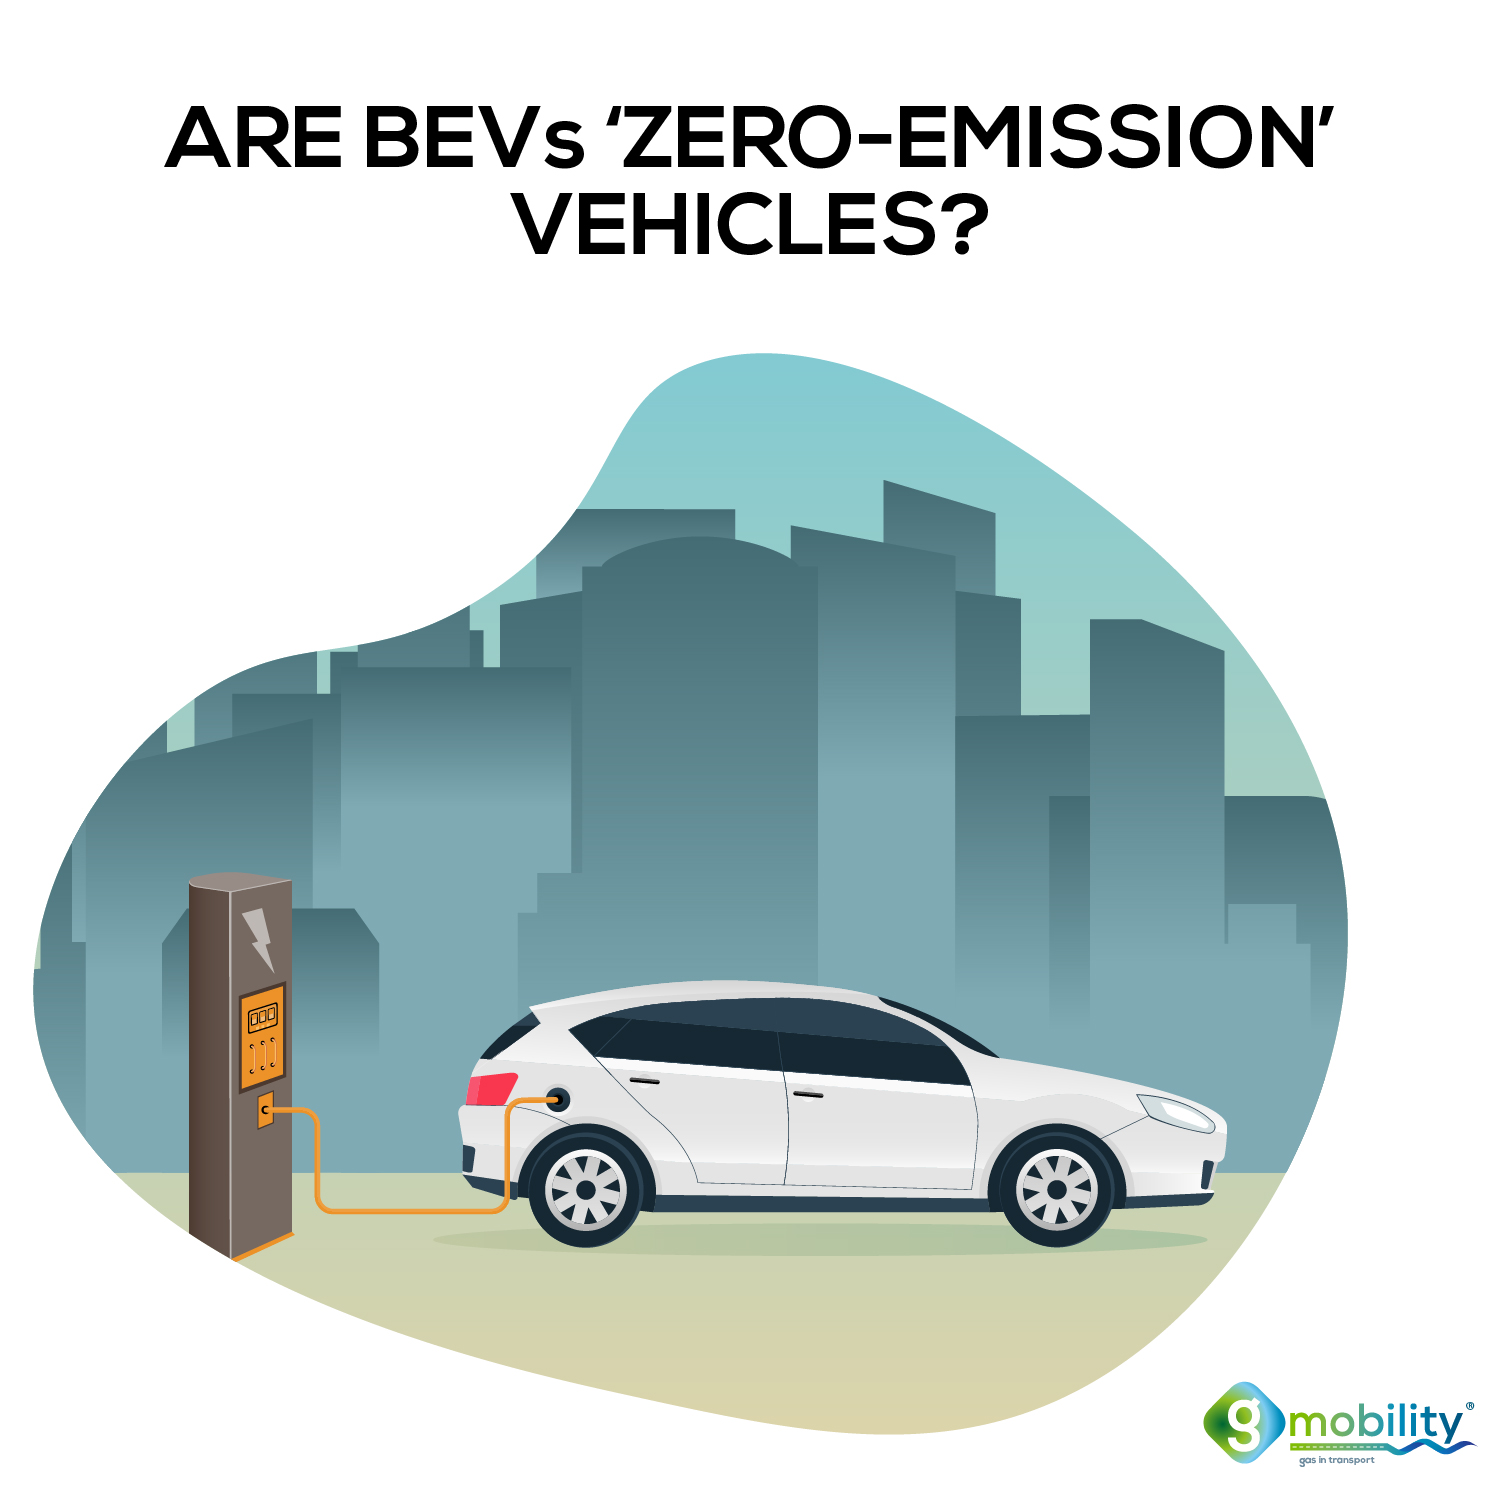 Are Battery-Electric Vehicles truly 'zero-emissions'?